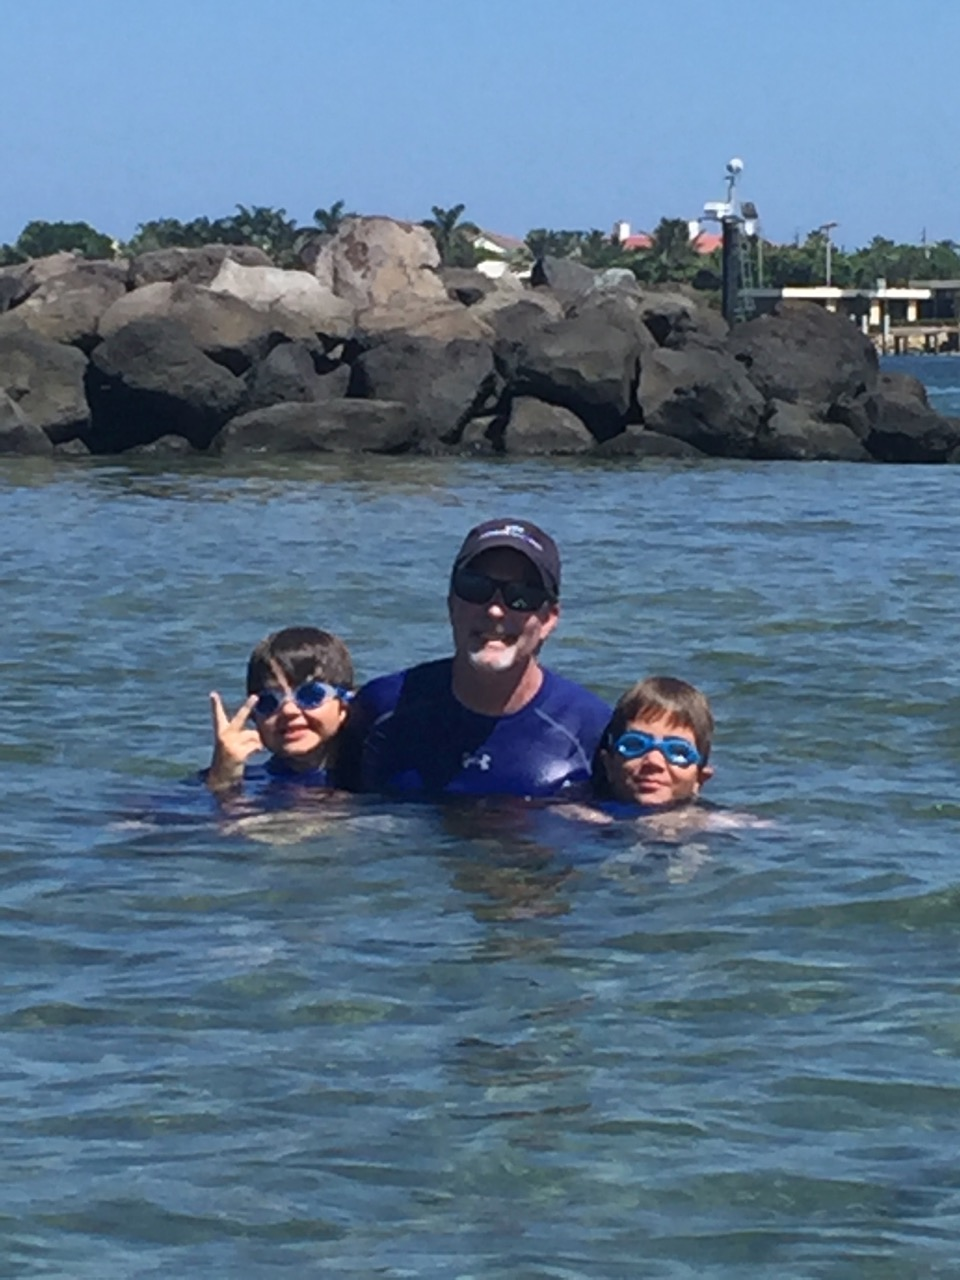 Me and the boys on Peanut Island